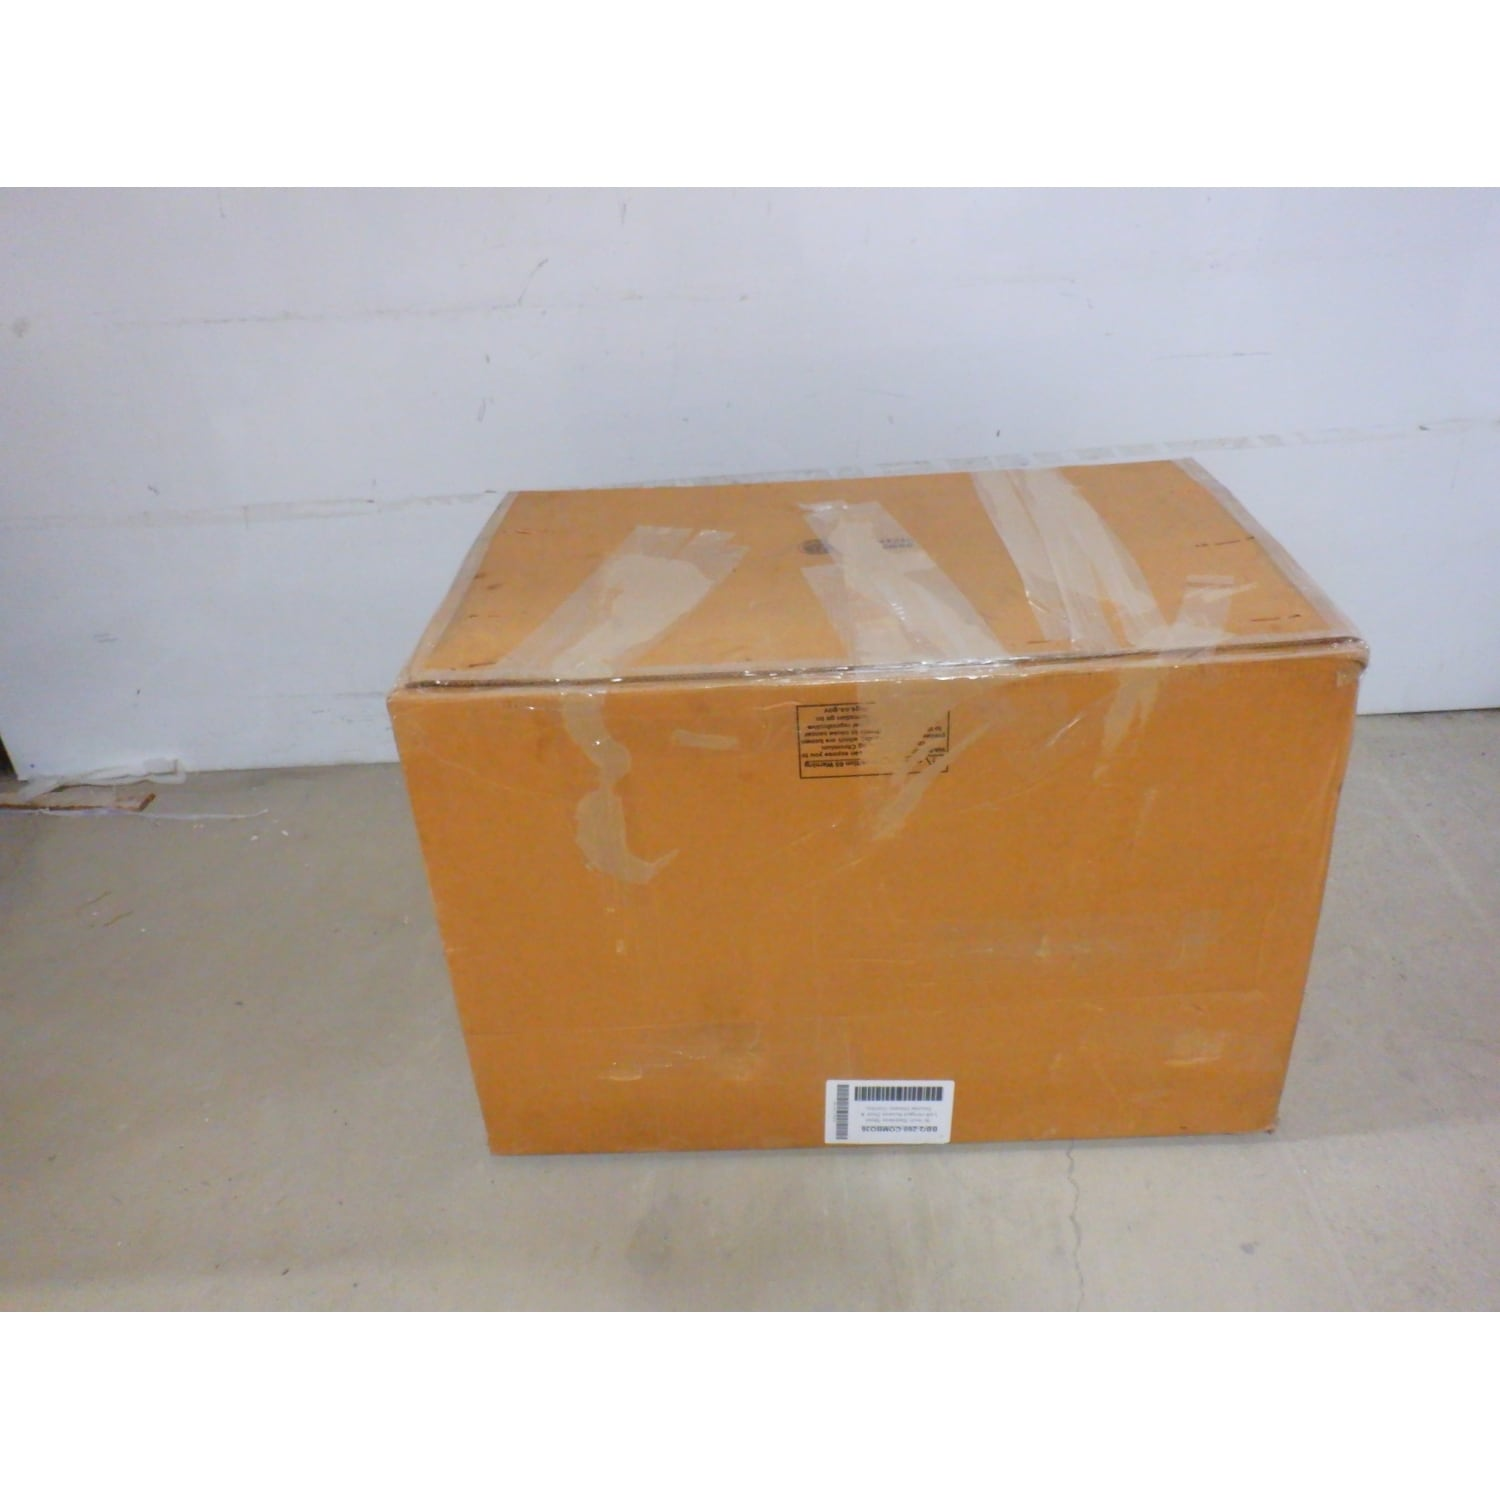 BBQGuys Signature Series 36-Inch Stainless Steel Right-Hinged Access Door & Double Drawer Combo The box is not in new/perfect condition, which is the reason for the discount. The item itself is brand new, no damage. (Stock# 121132-2-H)